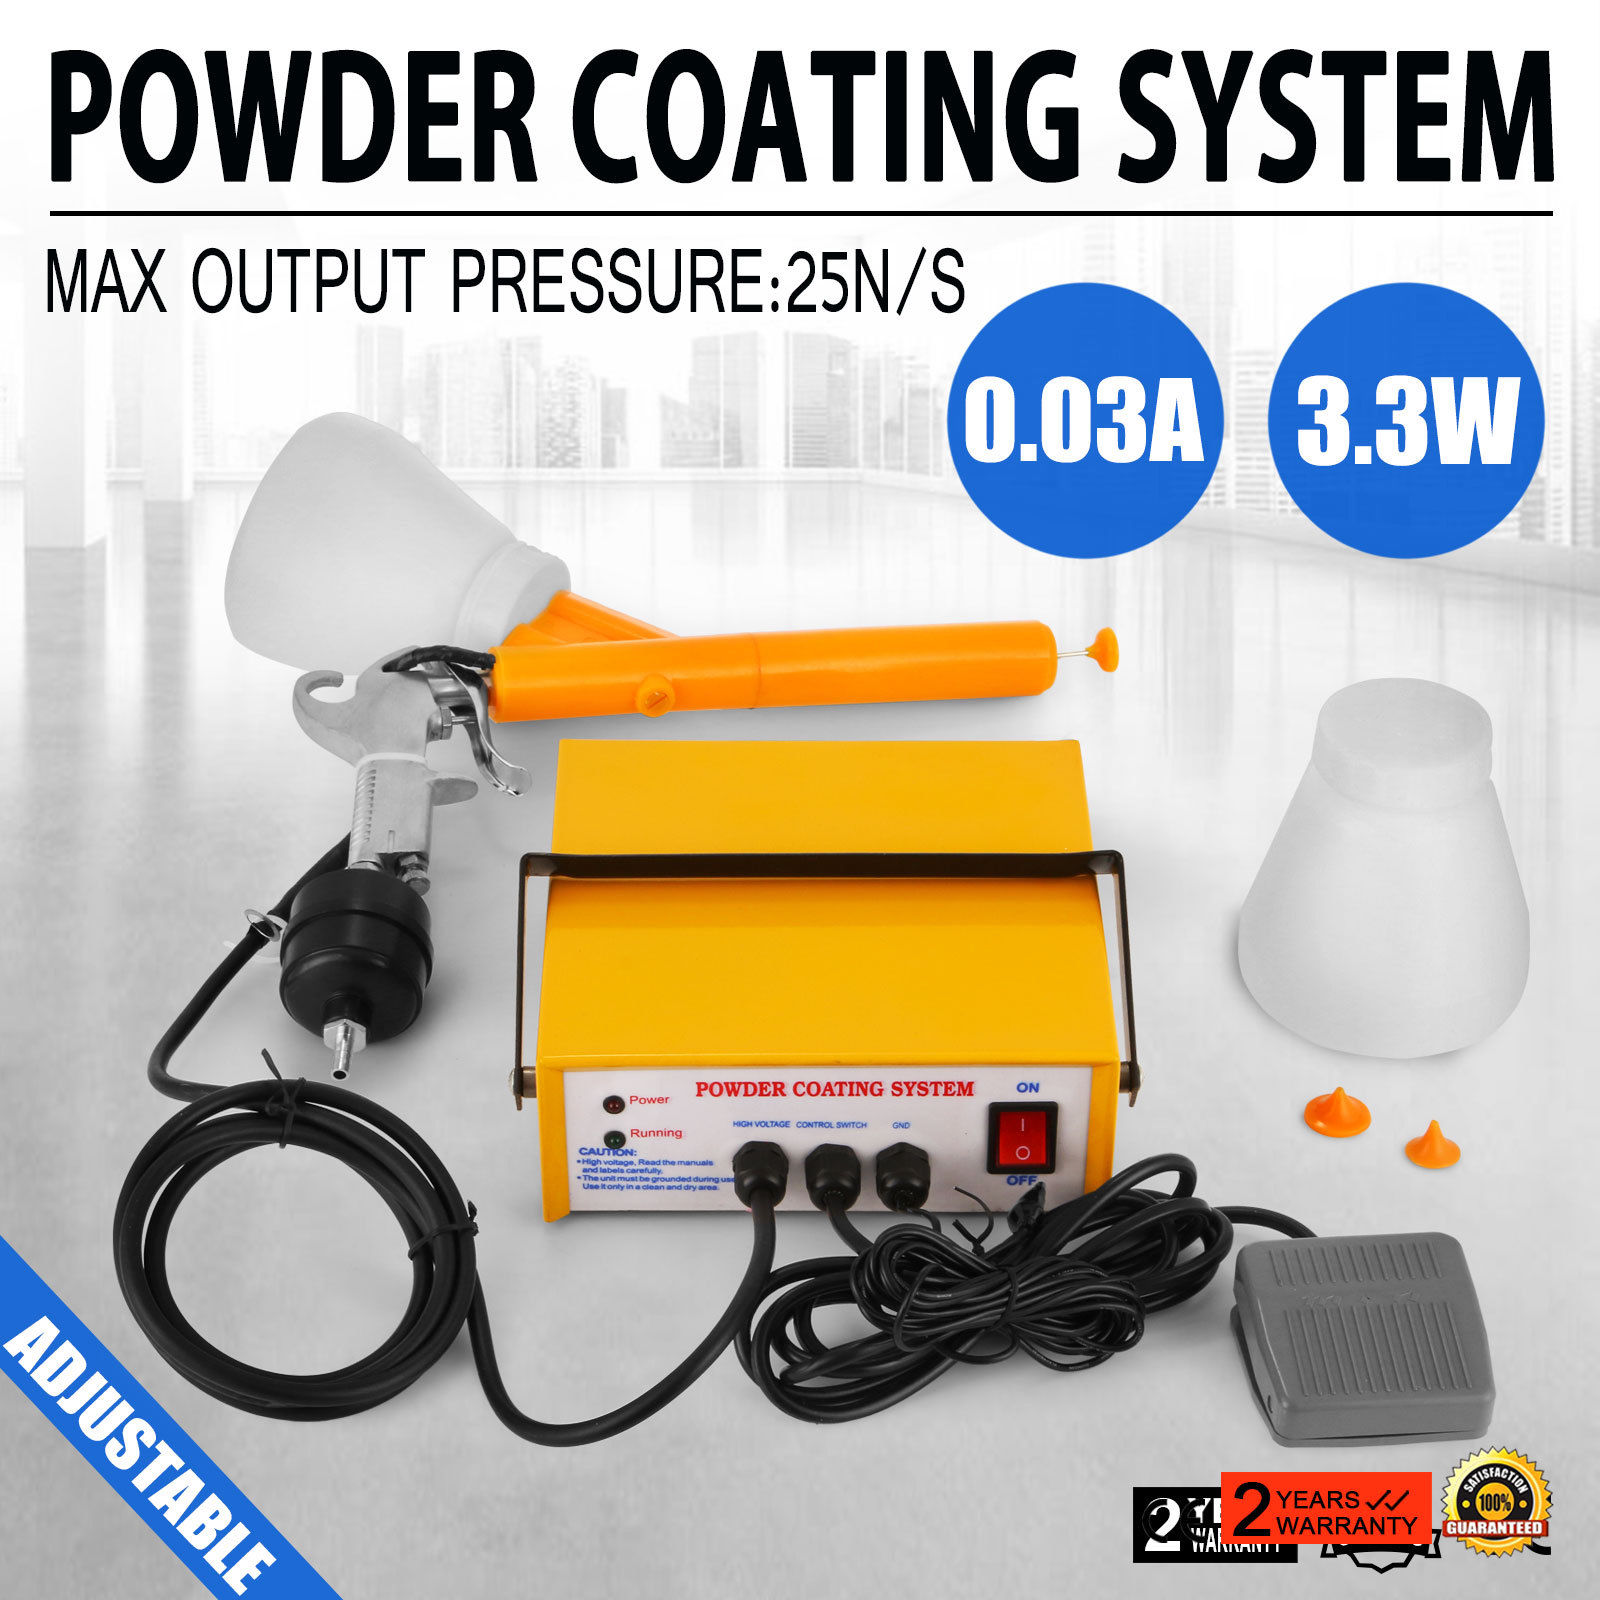 Powder Coating System Portable Electrostatic Spray Paint Gun PC03-5